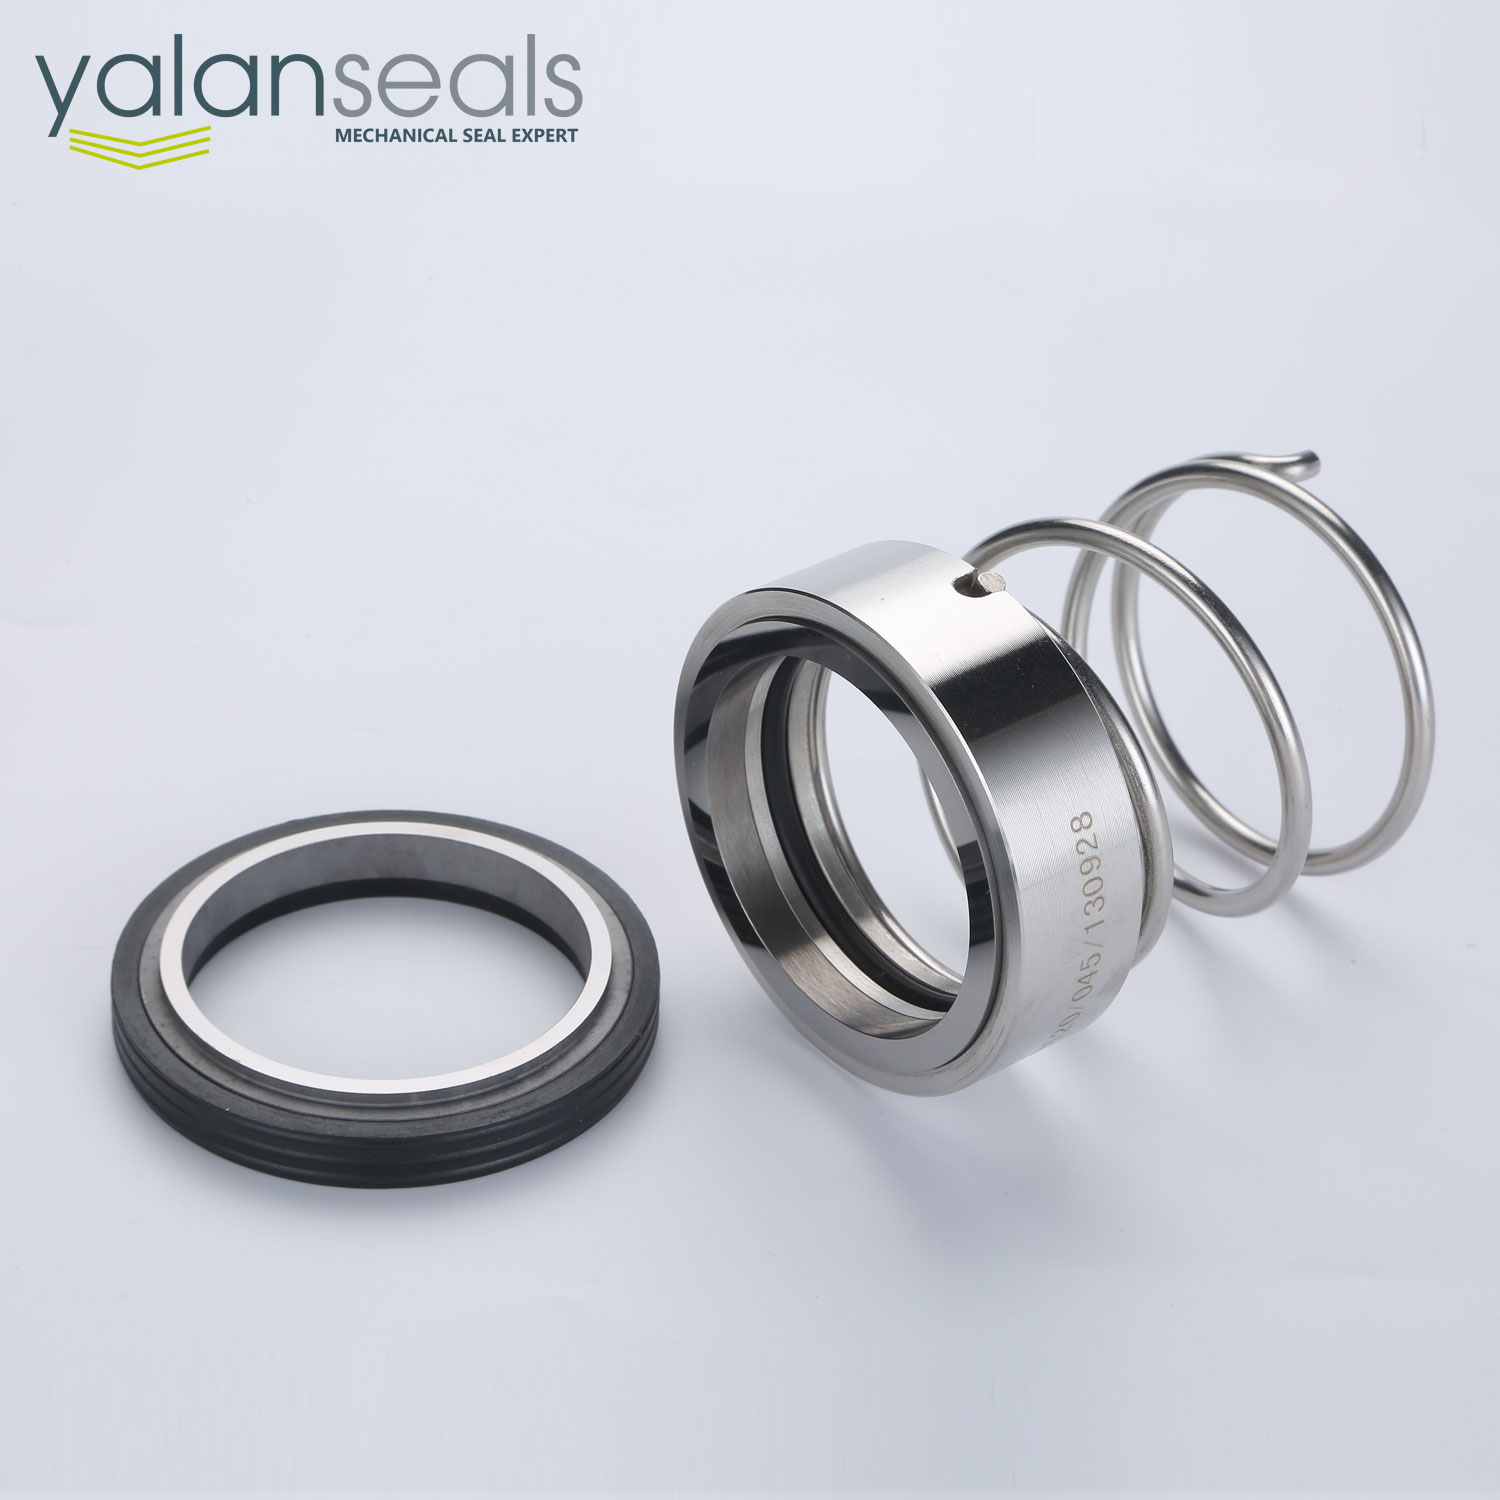 YALAN U120 Single Spring Mechanical Seal for Centrifugal Pumps, Clean Water Pumps, Sewage Pumps and Chemical Pumps